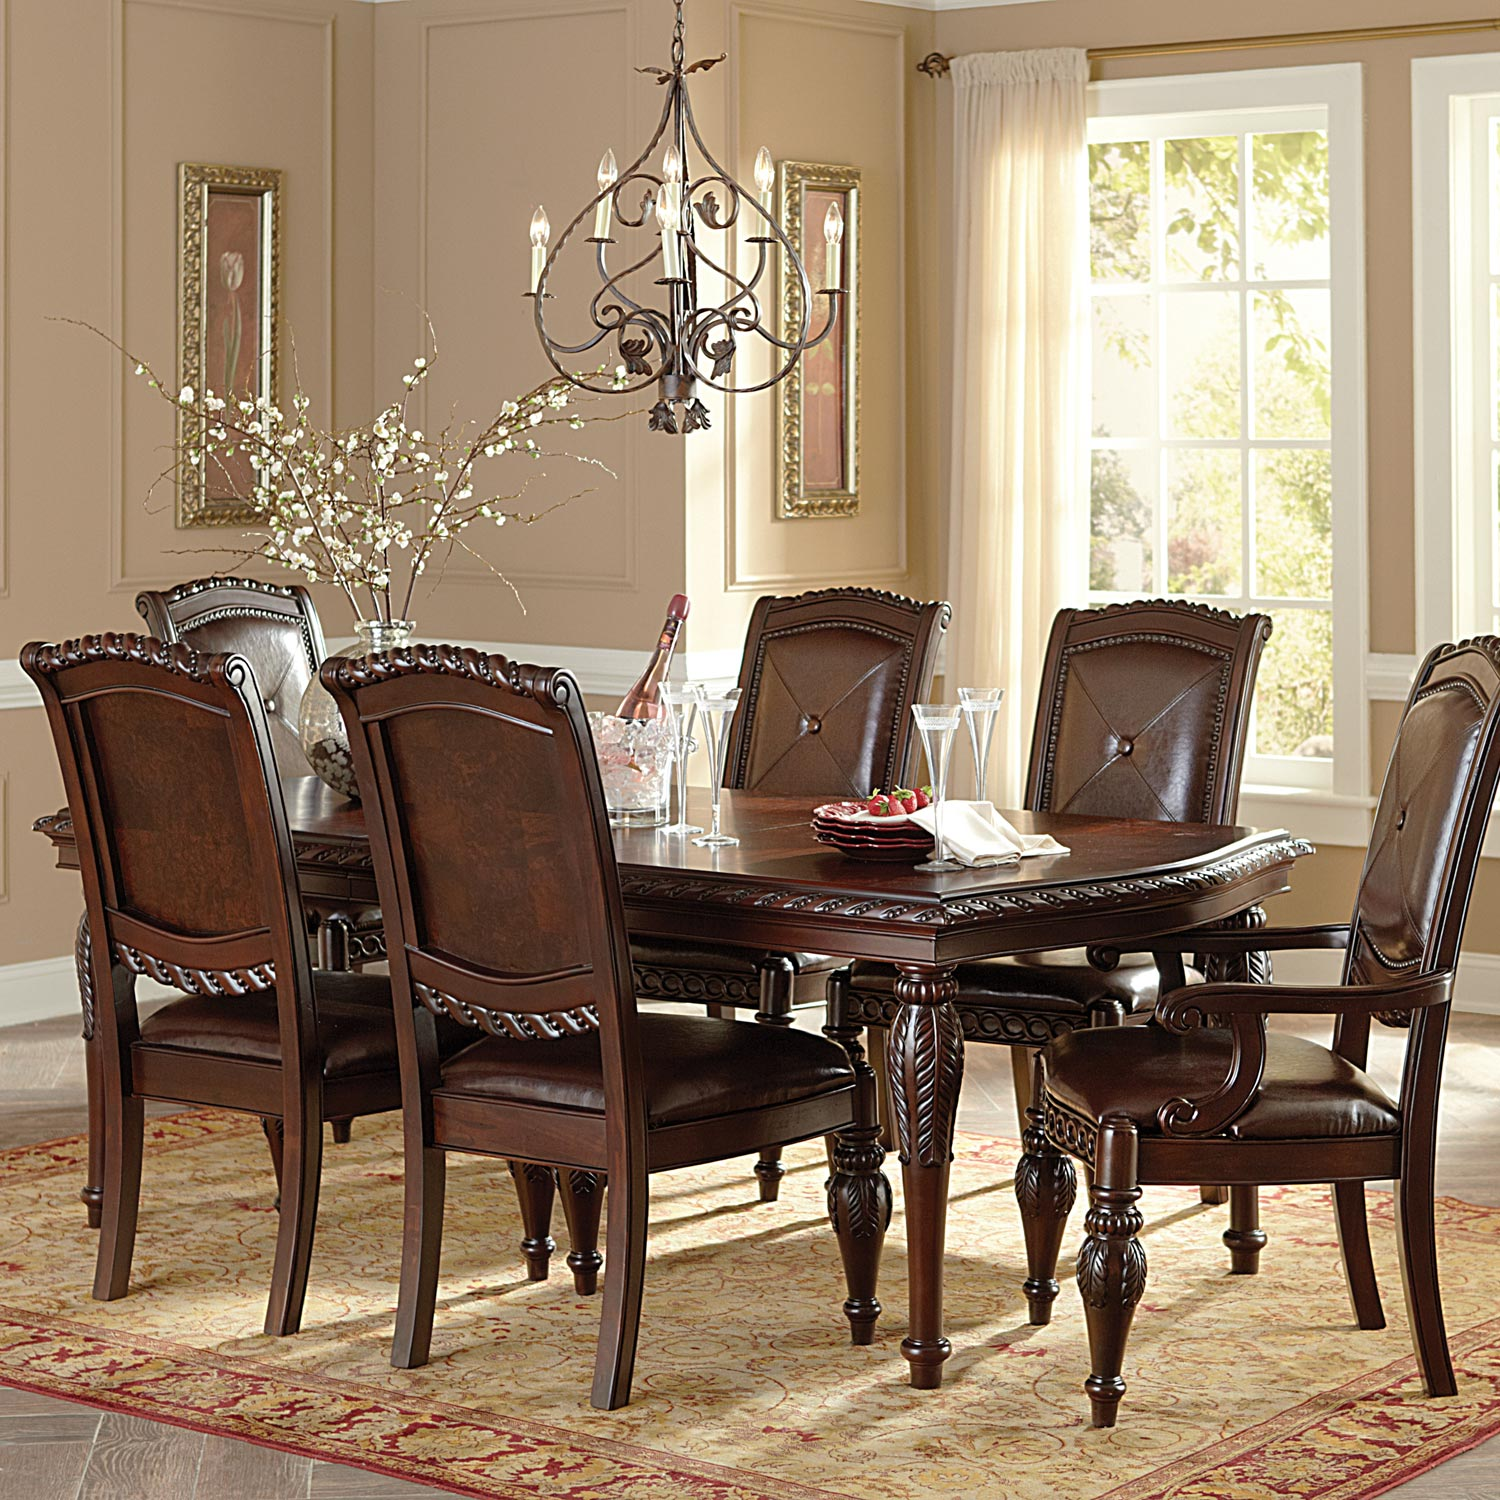 Antoinette 7 Piece Dining Set   Extending Table, Cherry Finish   SSC AY100   ...